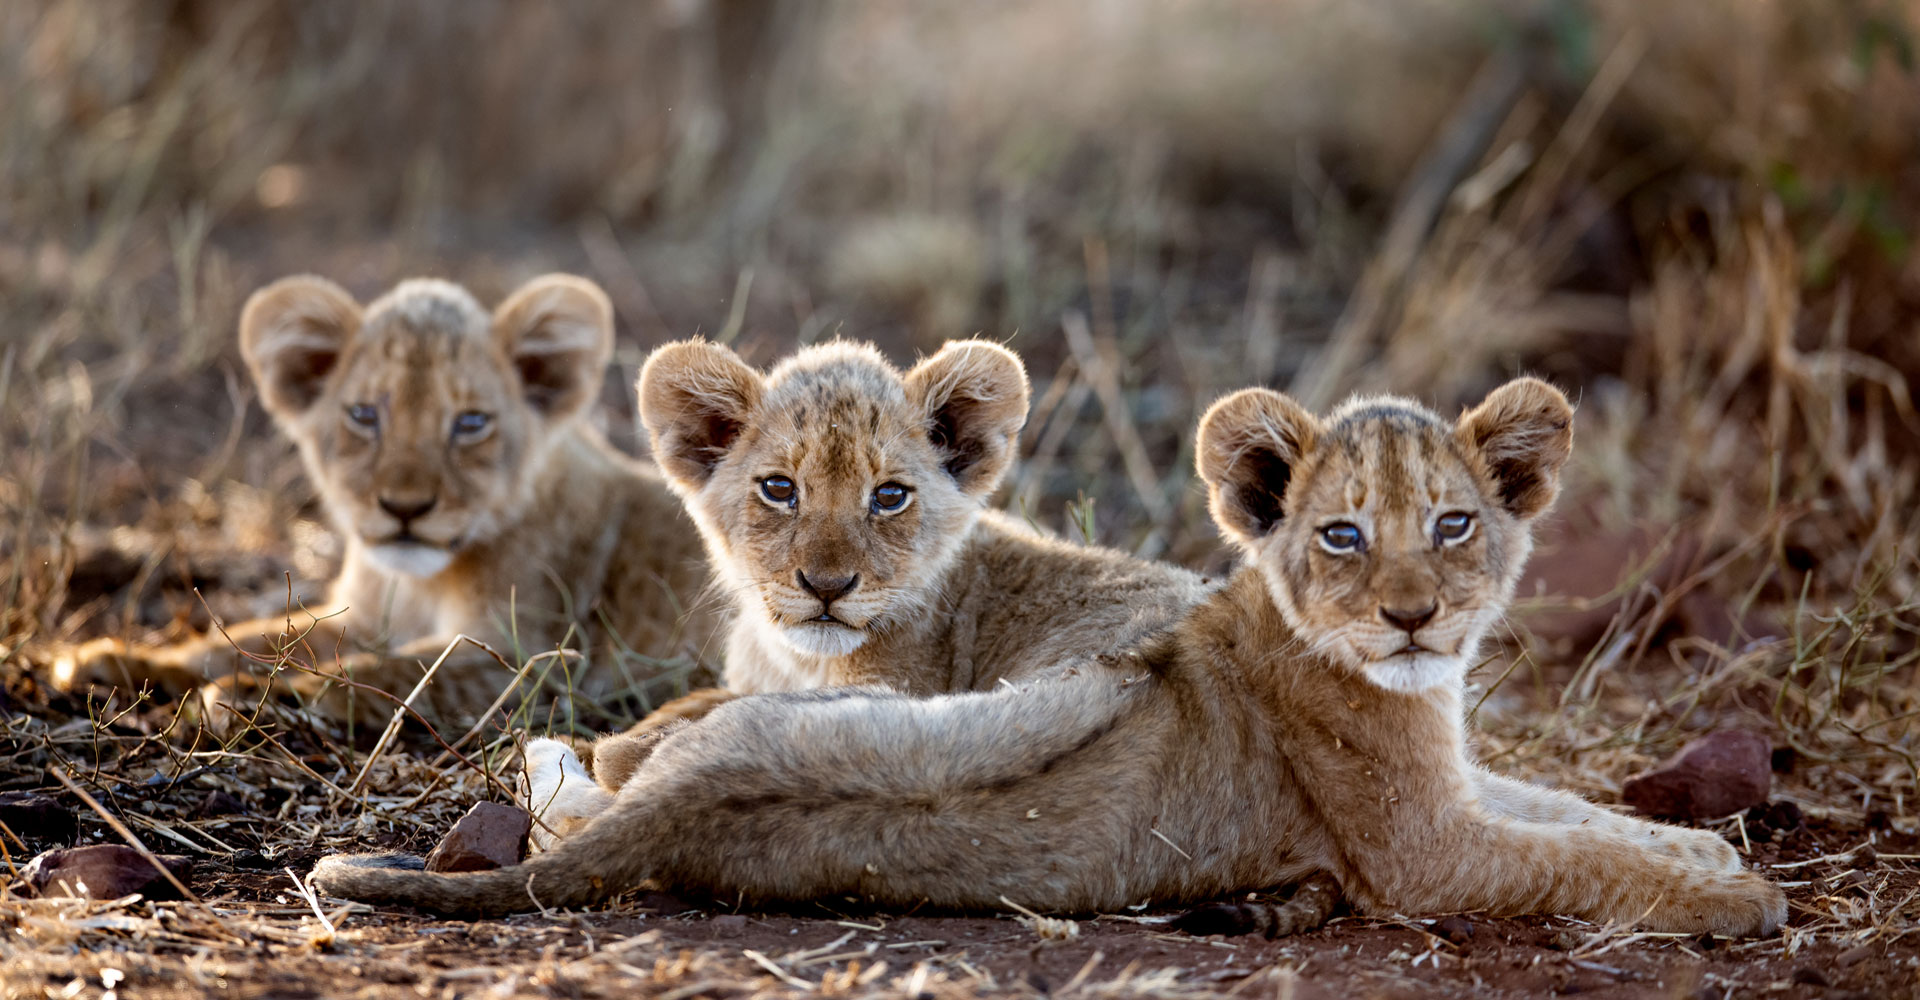 Home-Page-Singita-Lion-_-Singita-Kruger-National-Park-_-Ross-Couper-10